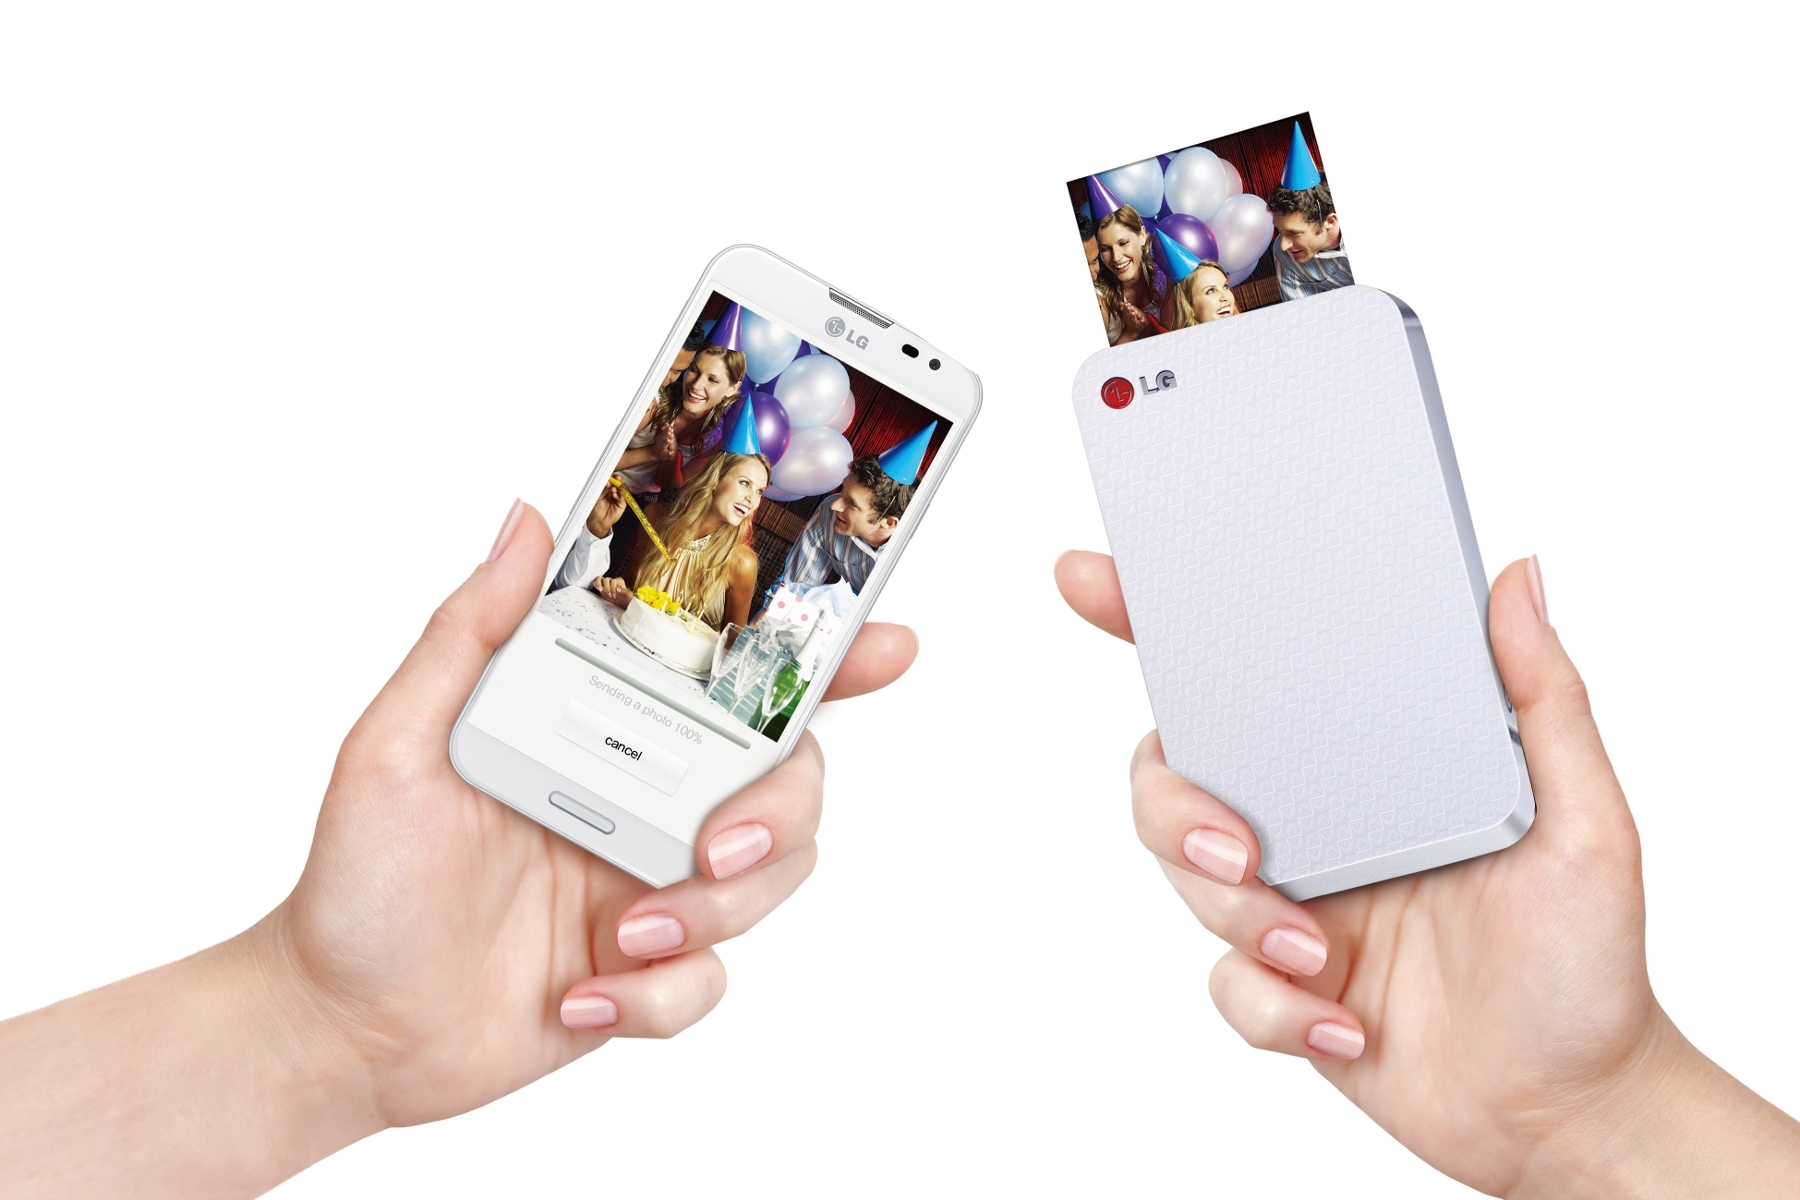 LG-Pocket-Photo-PD233-4